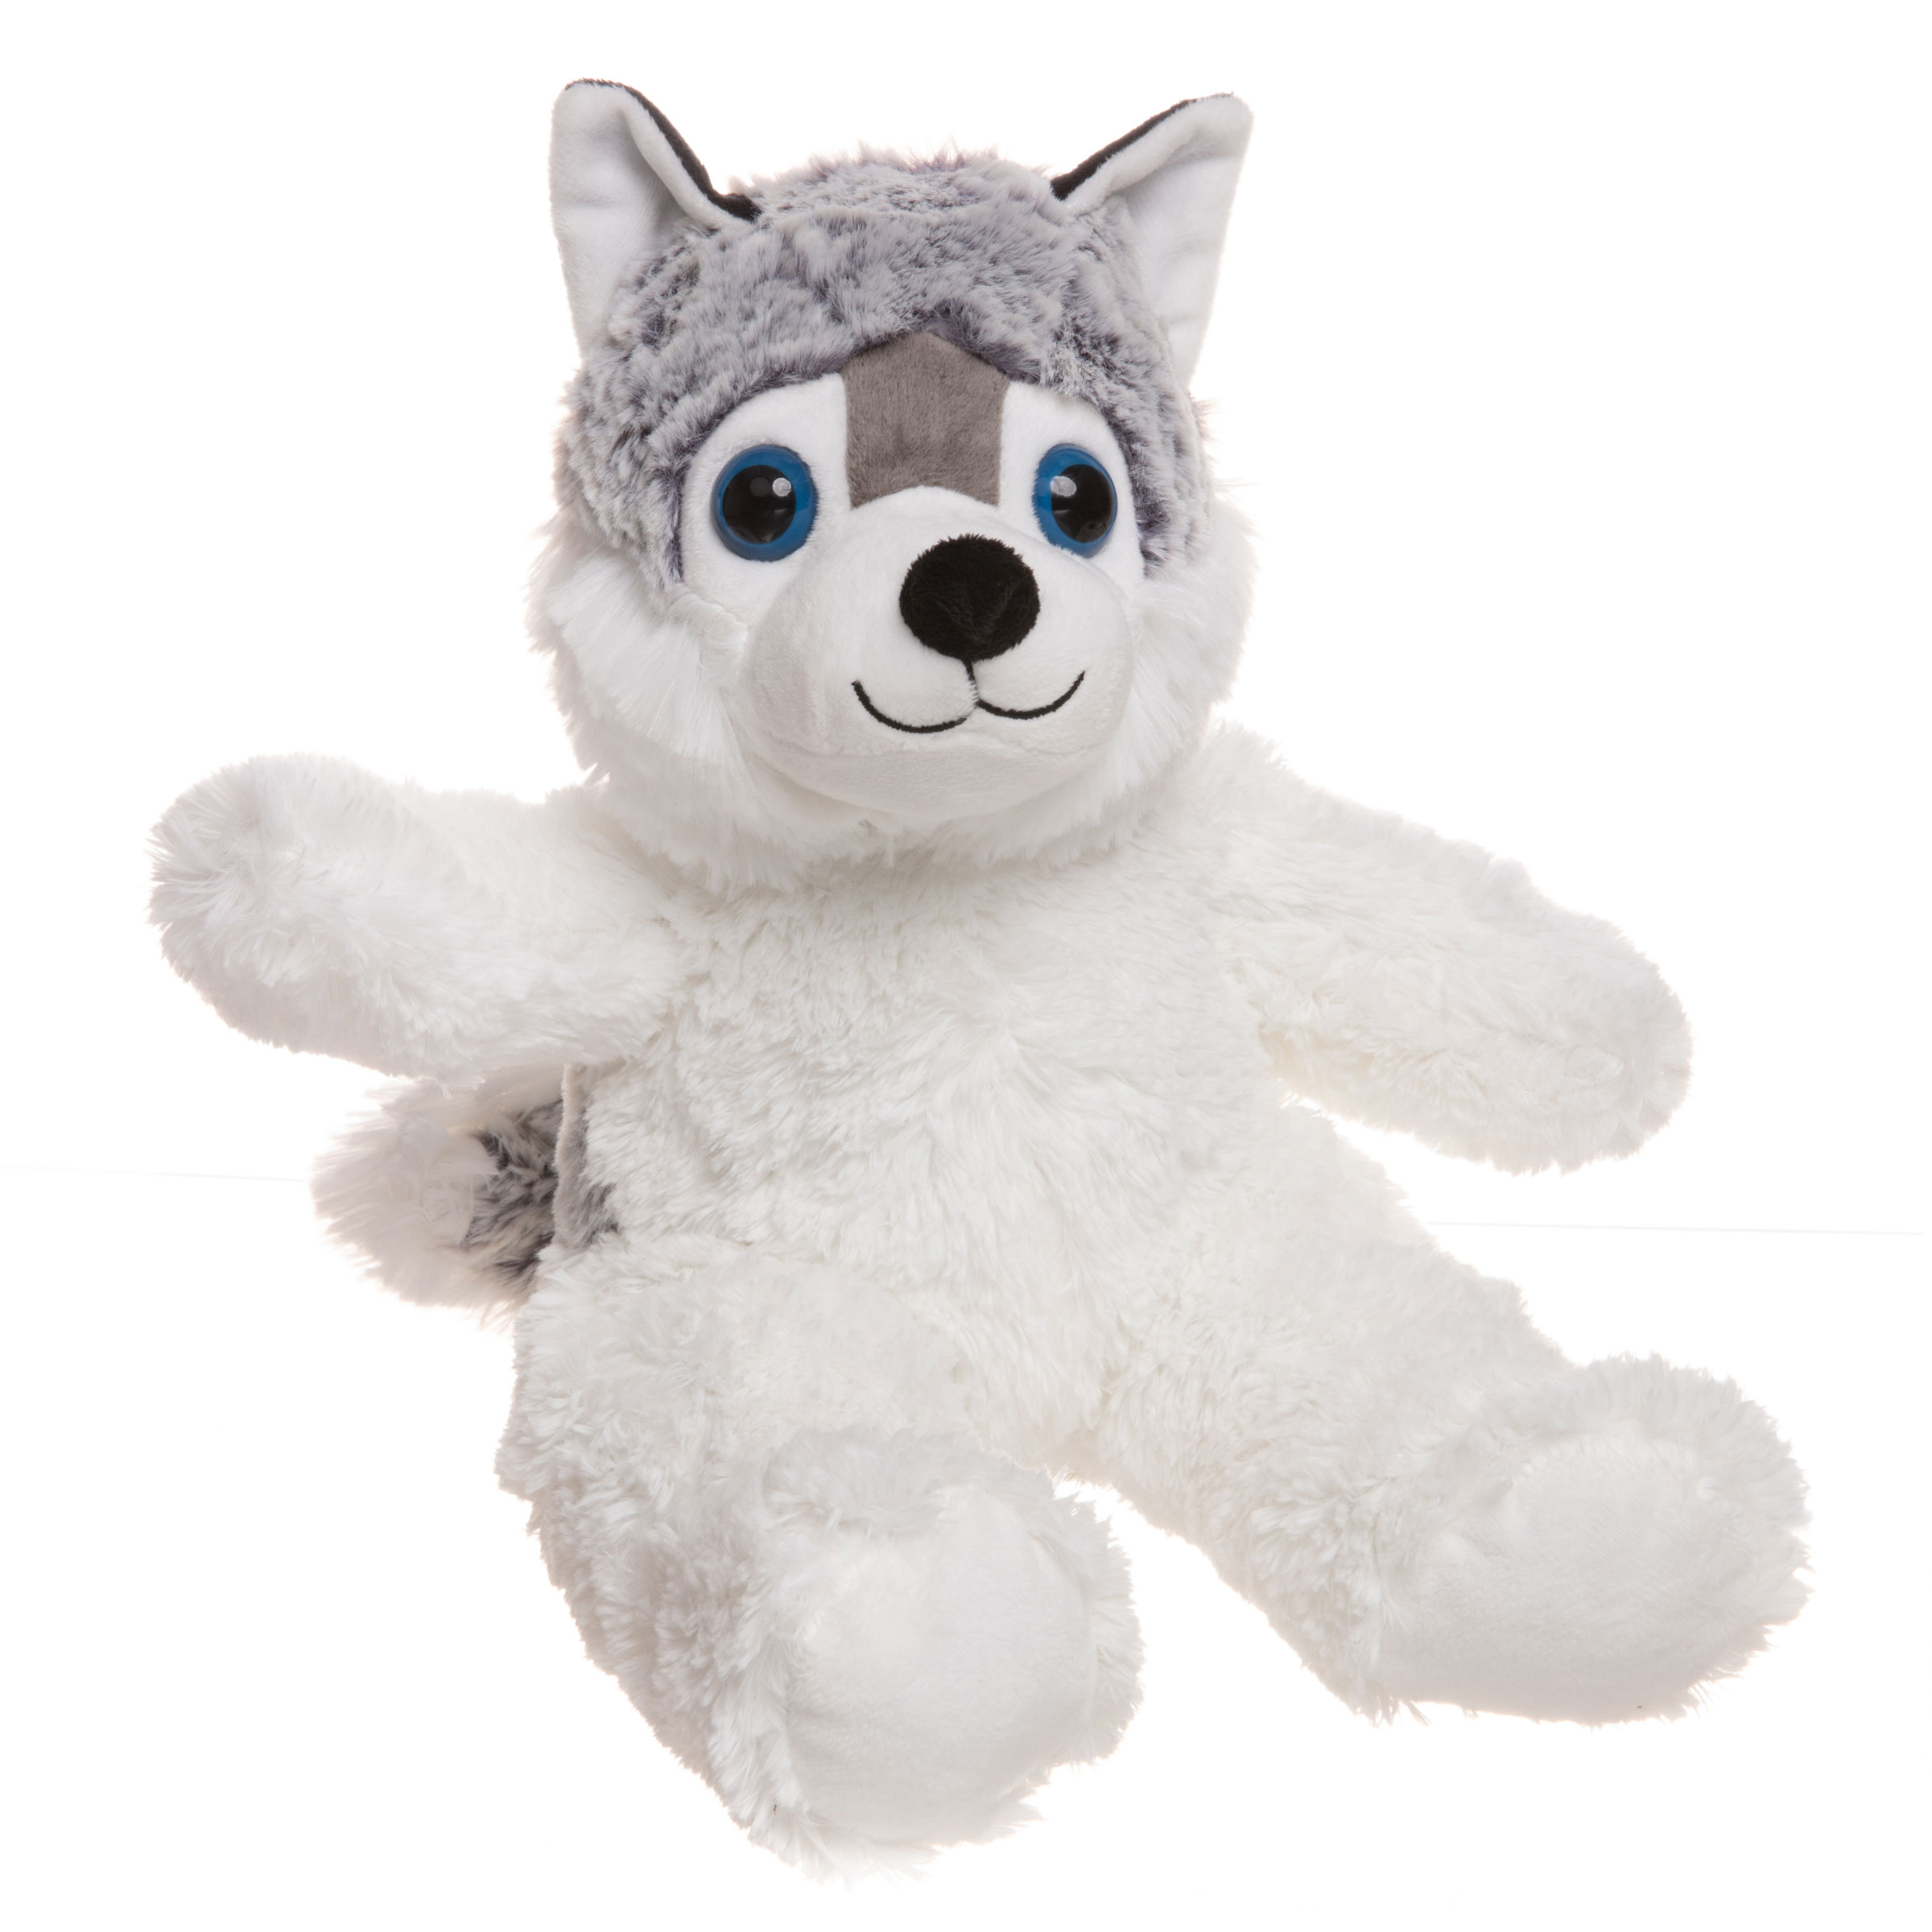 Henry the Husky Teddy Bear